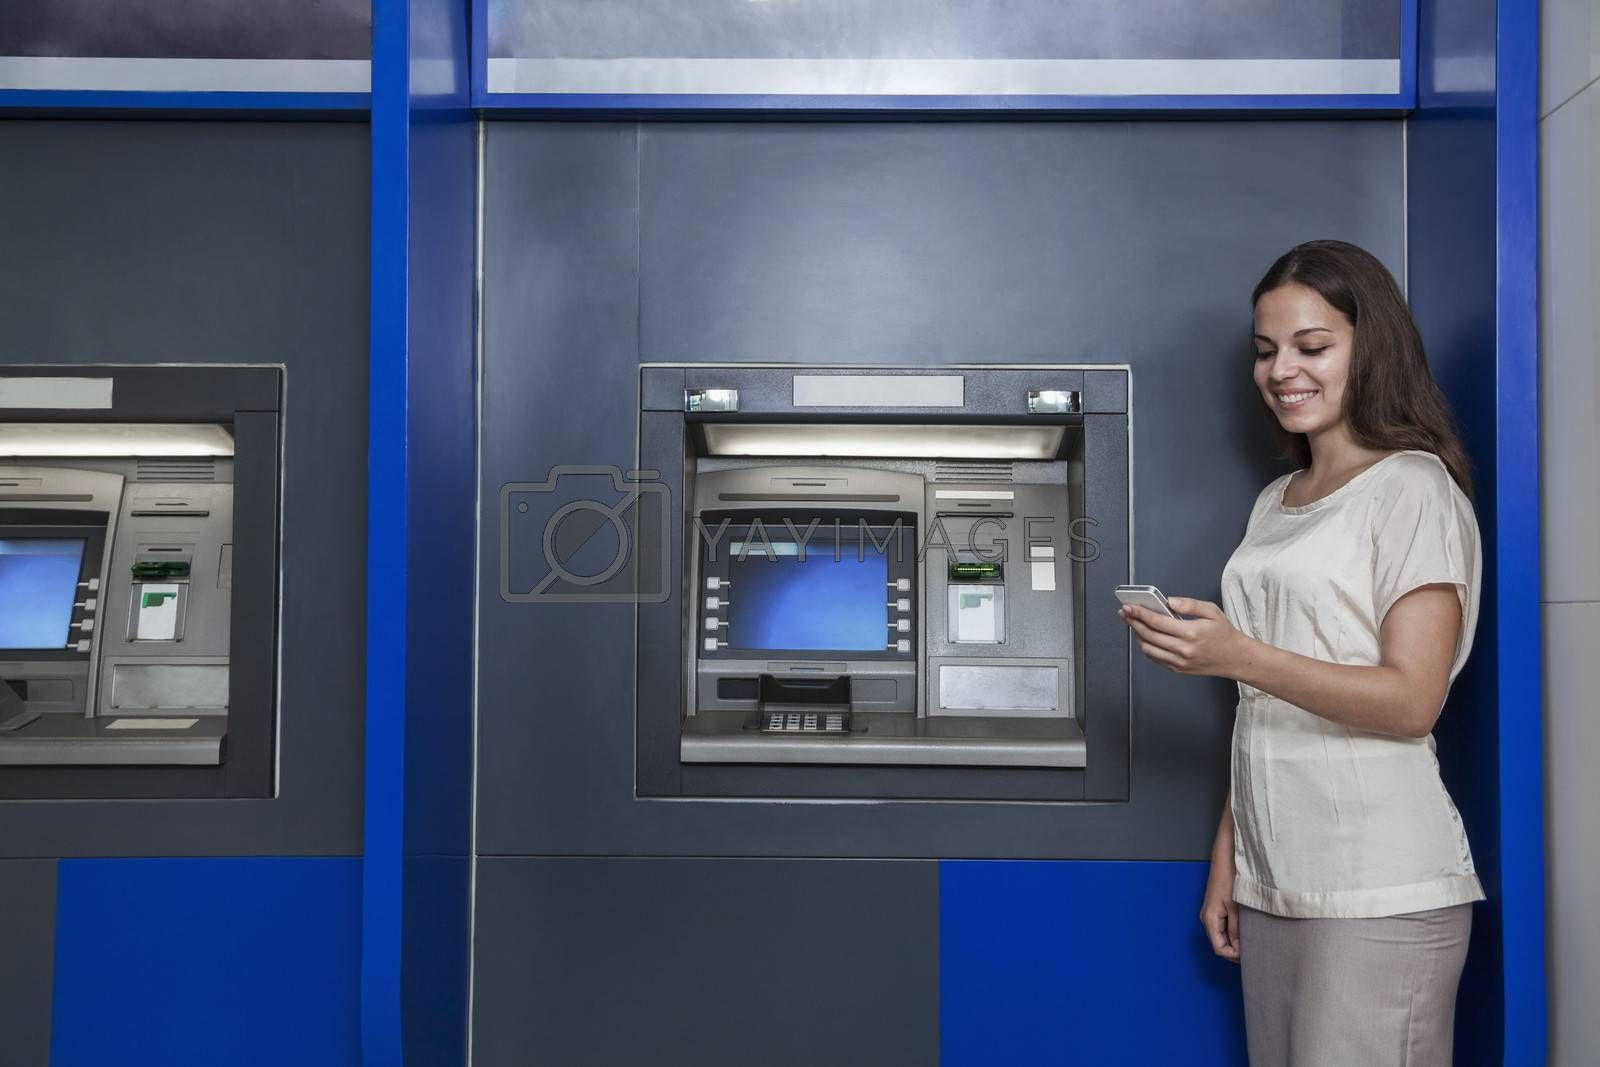 Smiling young woman standing in front of an ATM and looking at her phone by XiXinXing